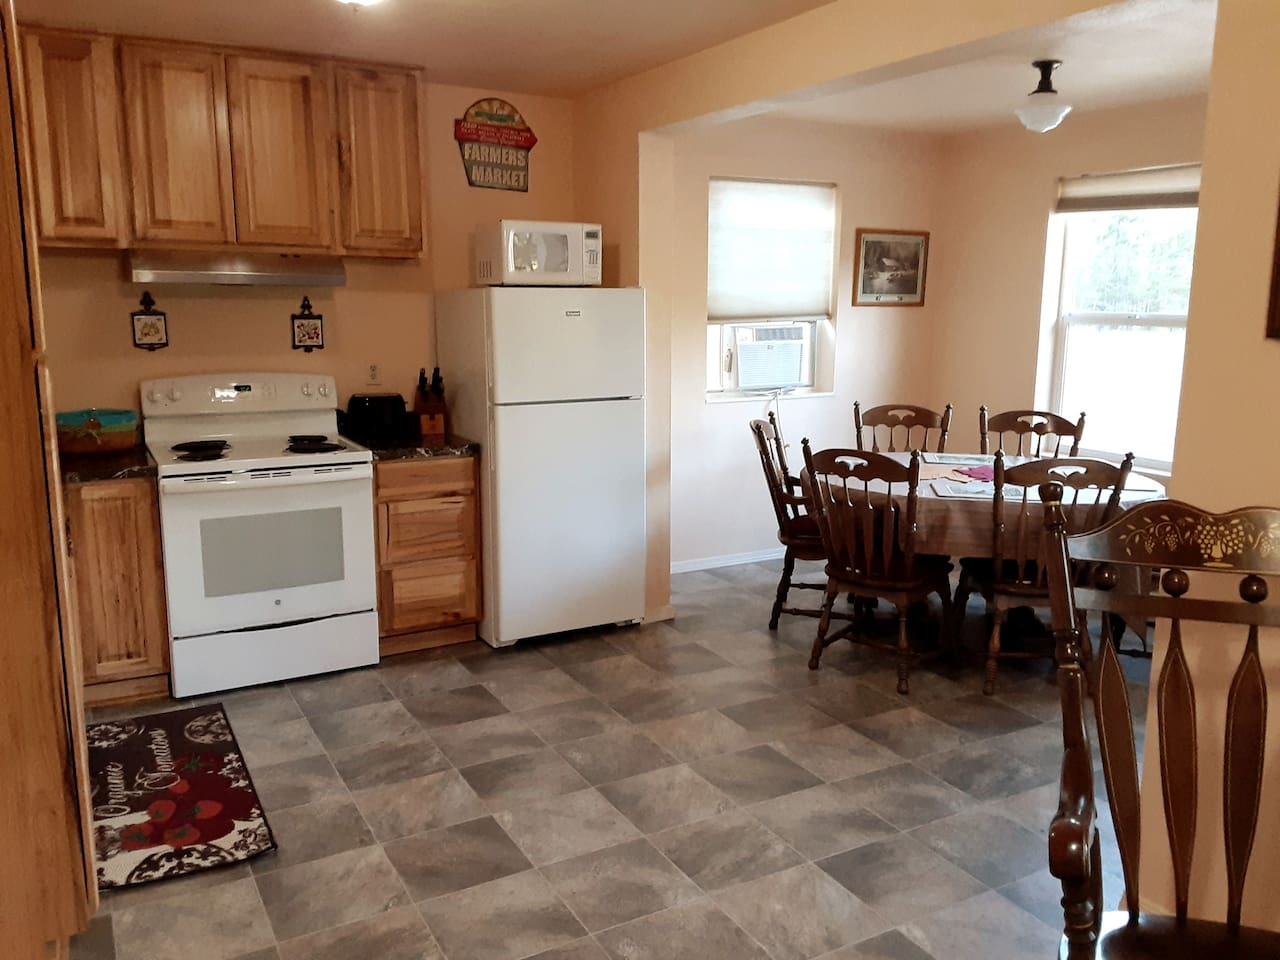 Kitchen and Dining areas from Livingroom